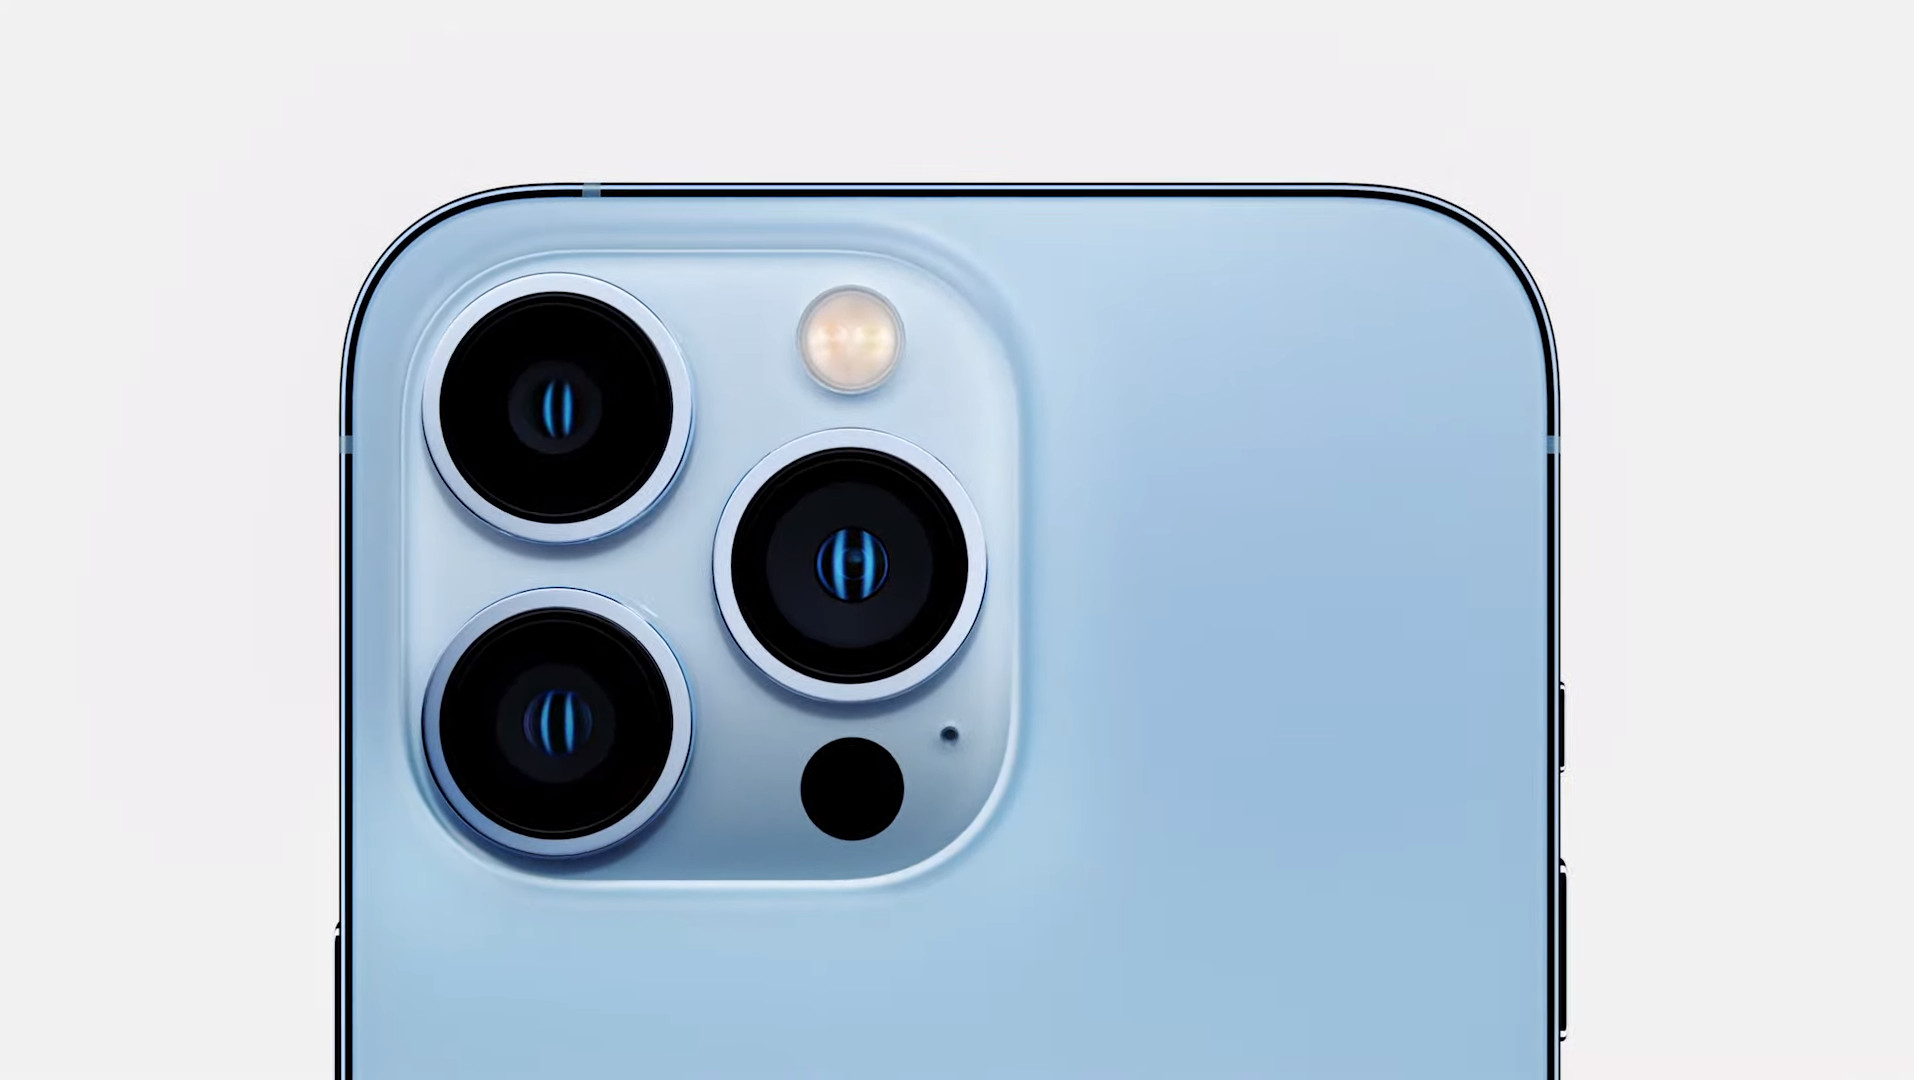 iPhone 13 Pro back cameras